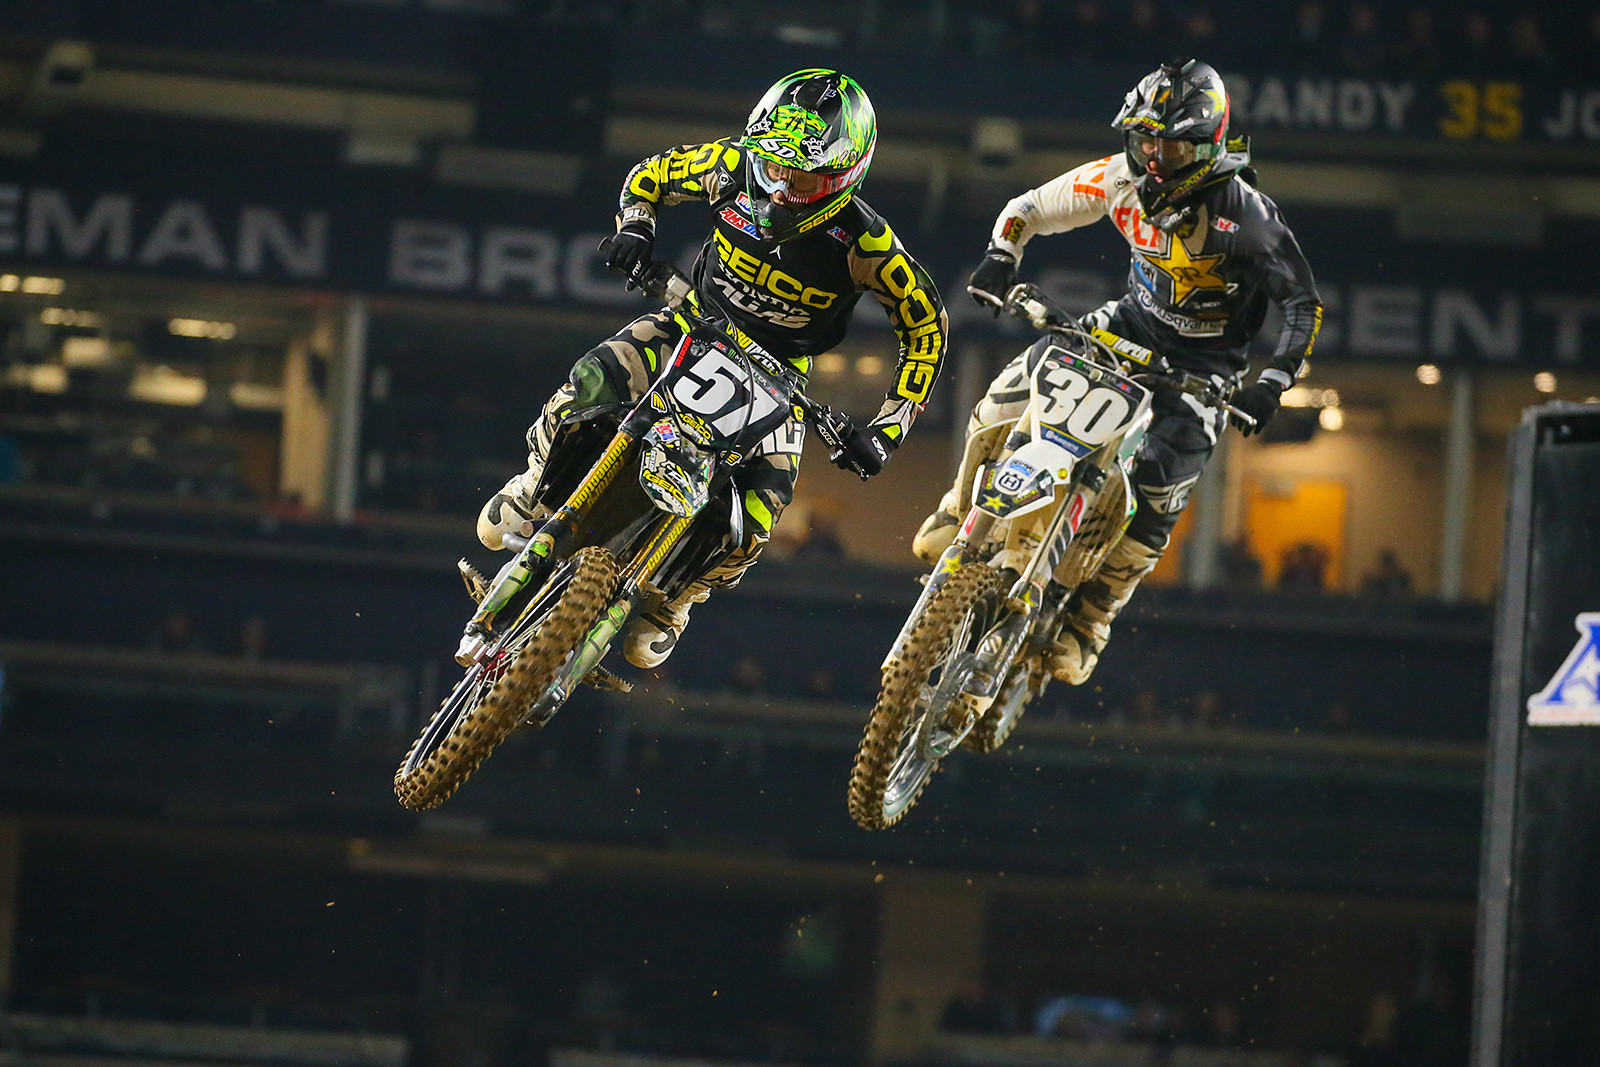 Jimmy DeCotis and Martin Davalos - Photo Blast: San Diego - Motocross Pictures - Vital MX